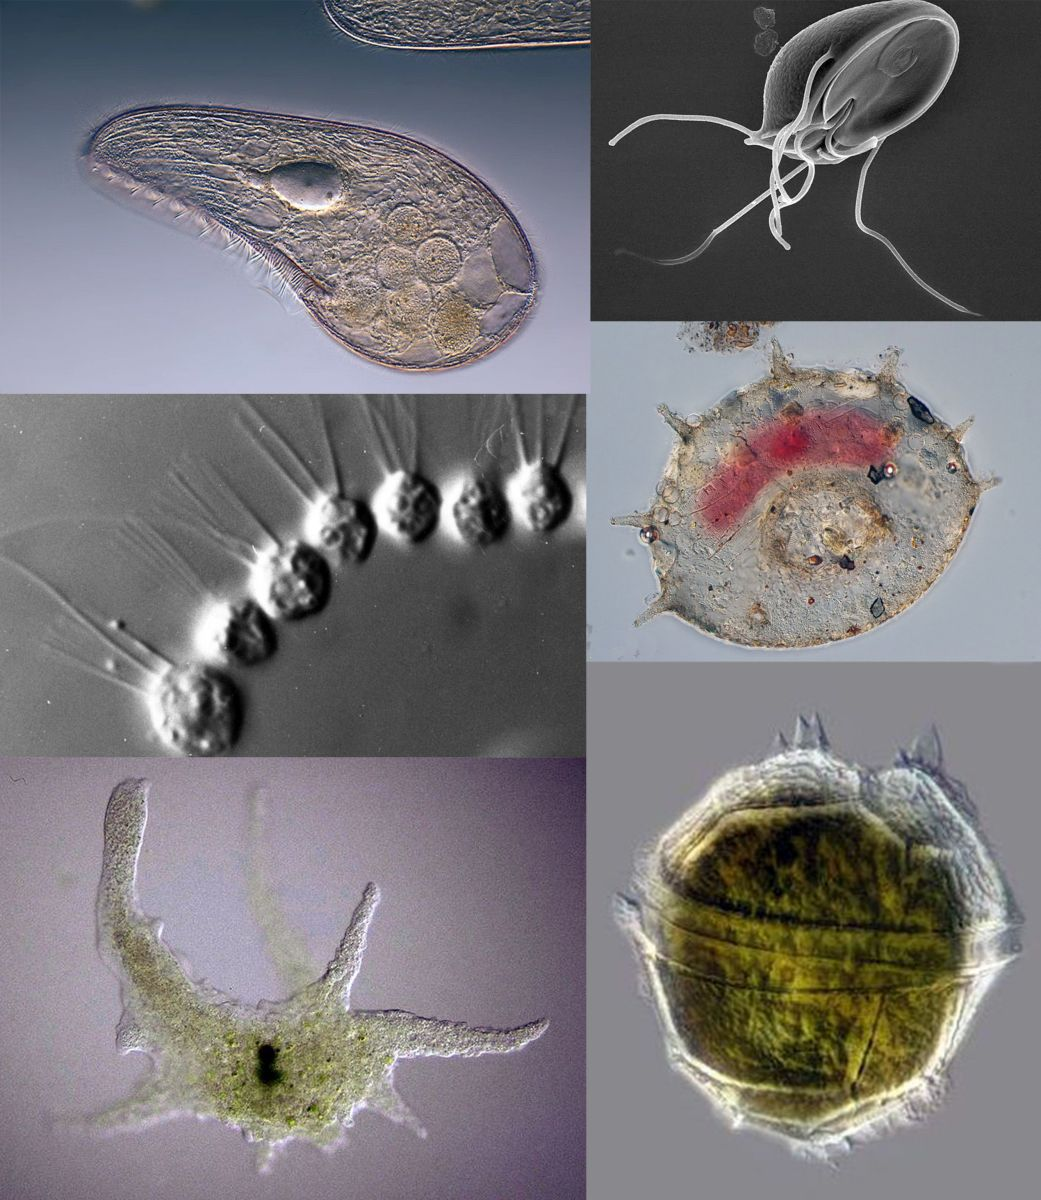 4 Main Groups of Protozoa